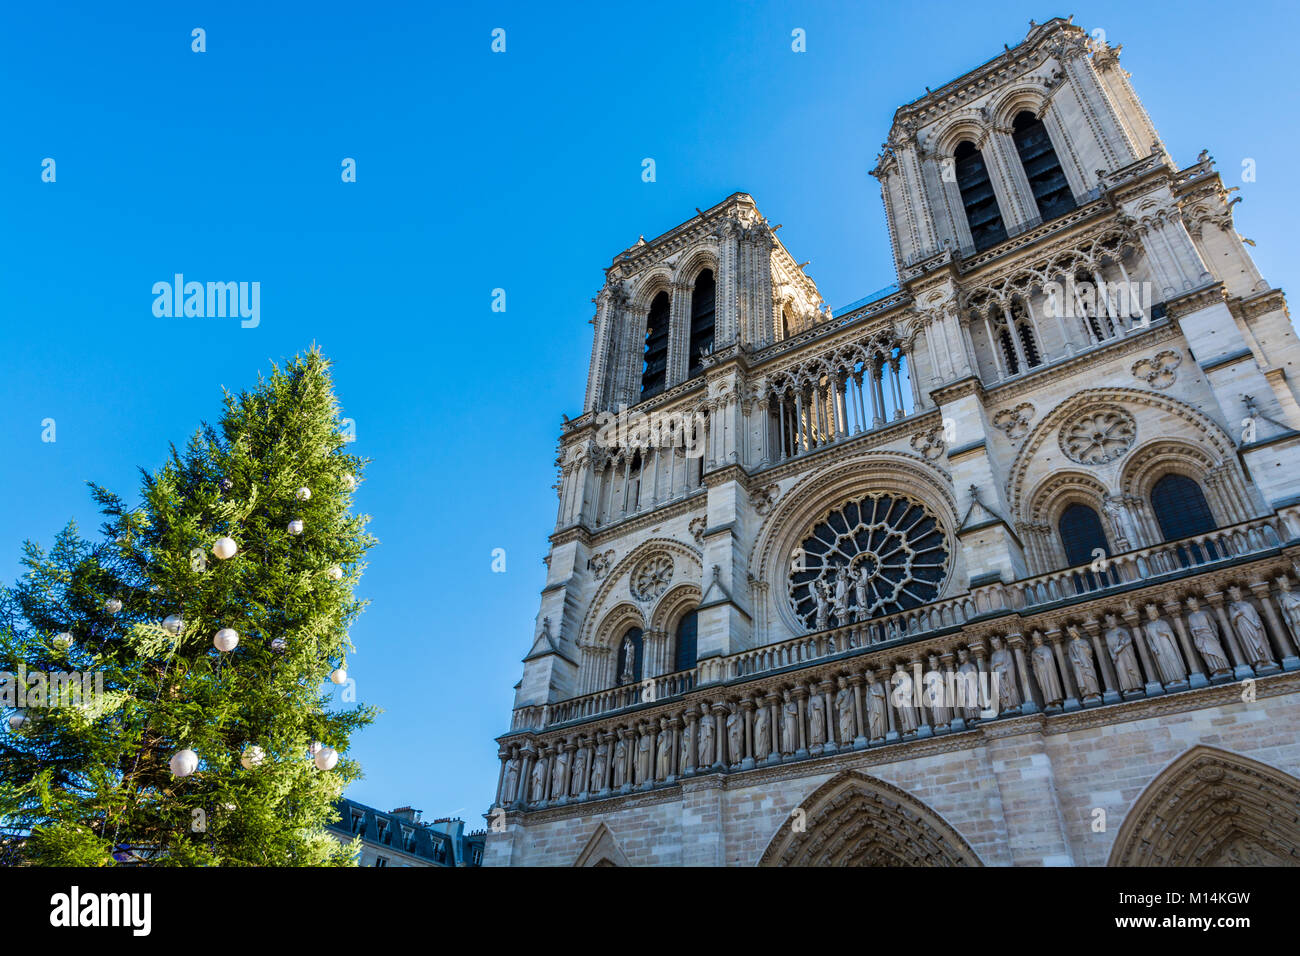 Paris, France: Medieval cathedral Notre Dame de Paris and the decorated Christmas tree in front. - Stock Image